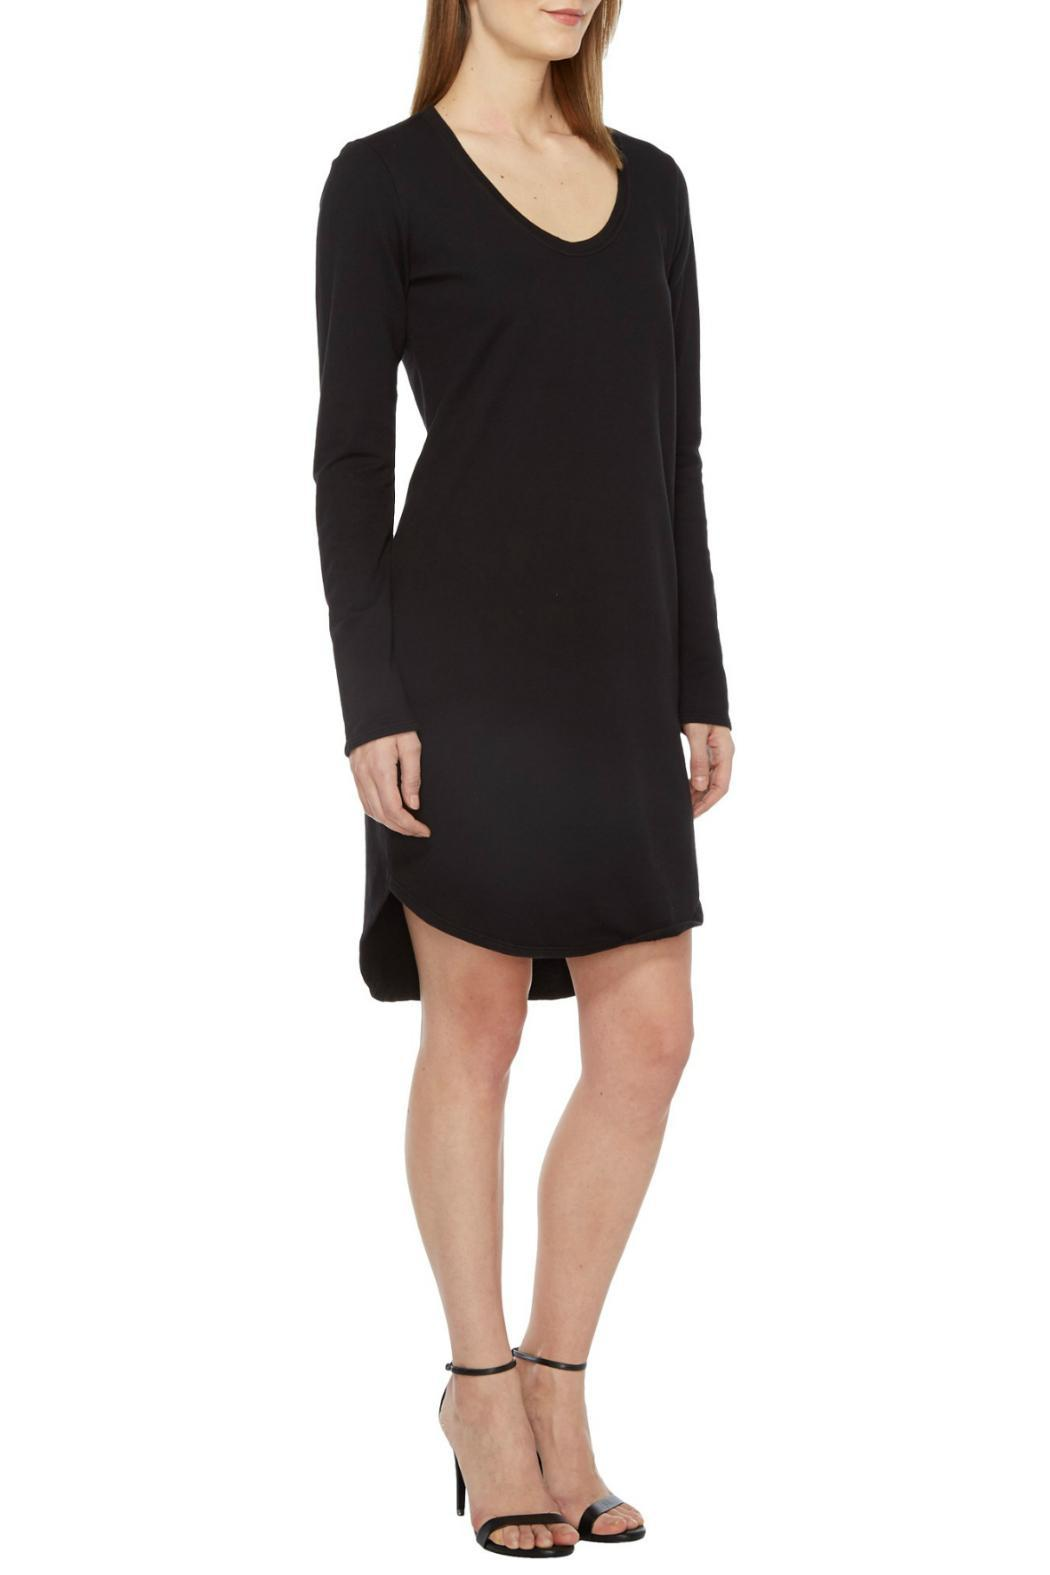 Heather French Terry Scoop Dress - Back Cropped Image